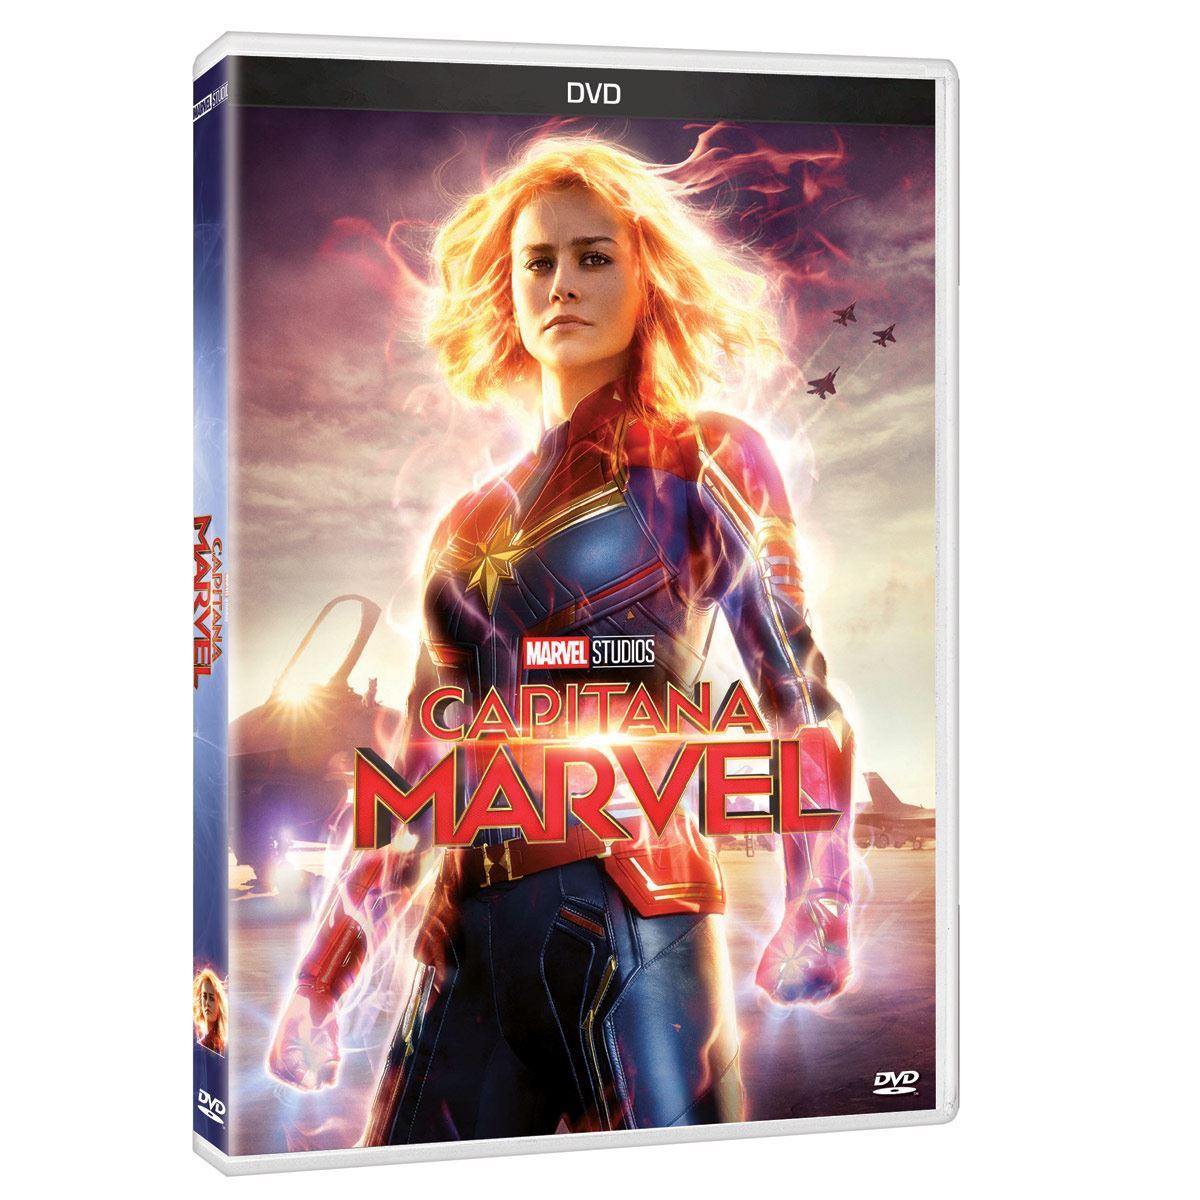 DVD Capitana Marvel